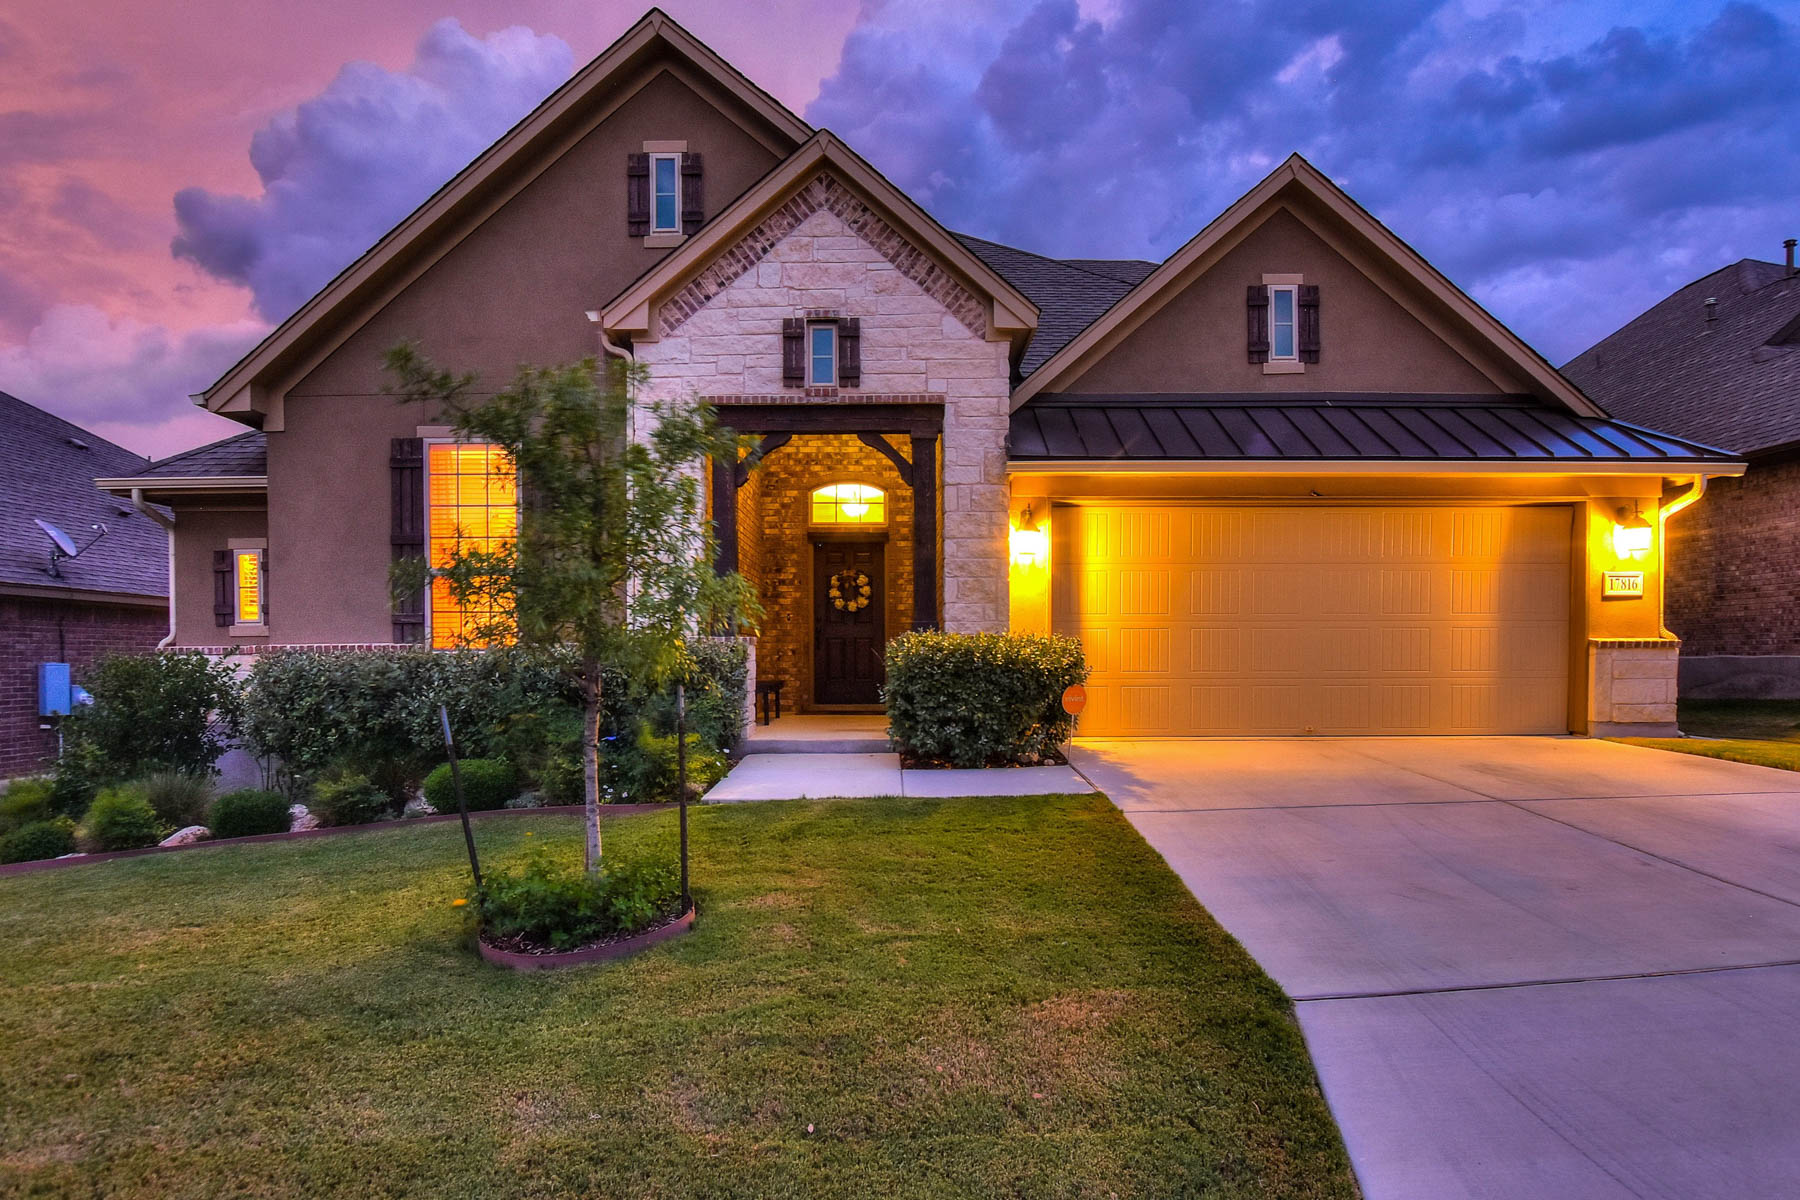 Single Family Home for Sale at Stunningly Upgraded Home in The Sanctuary 17816 Oxford Mt Helotes, Texas 78023 United States